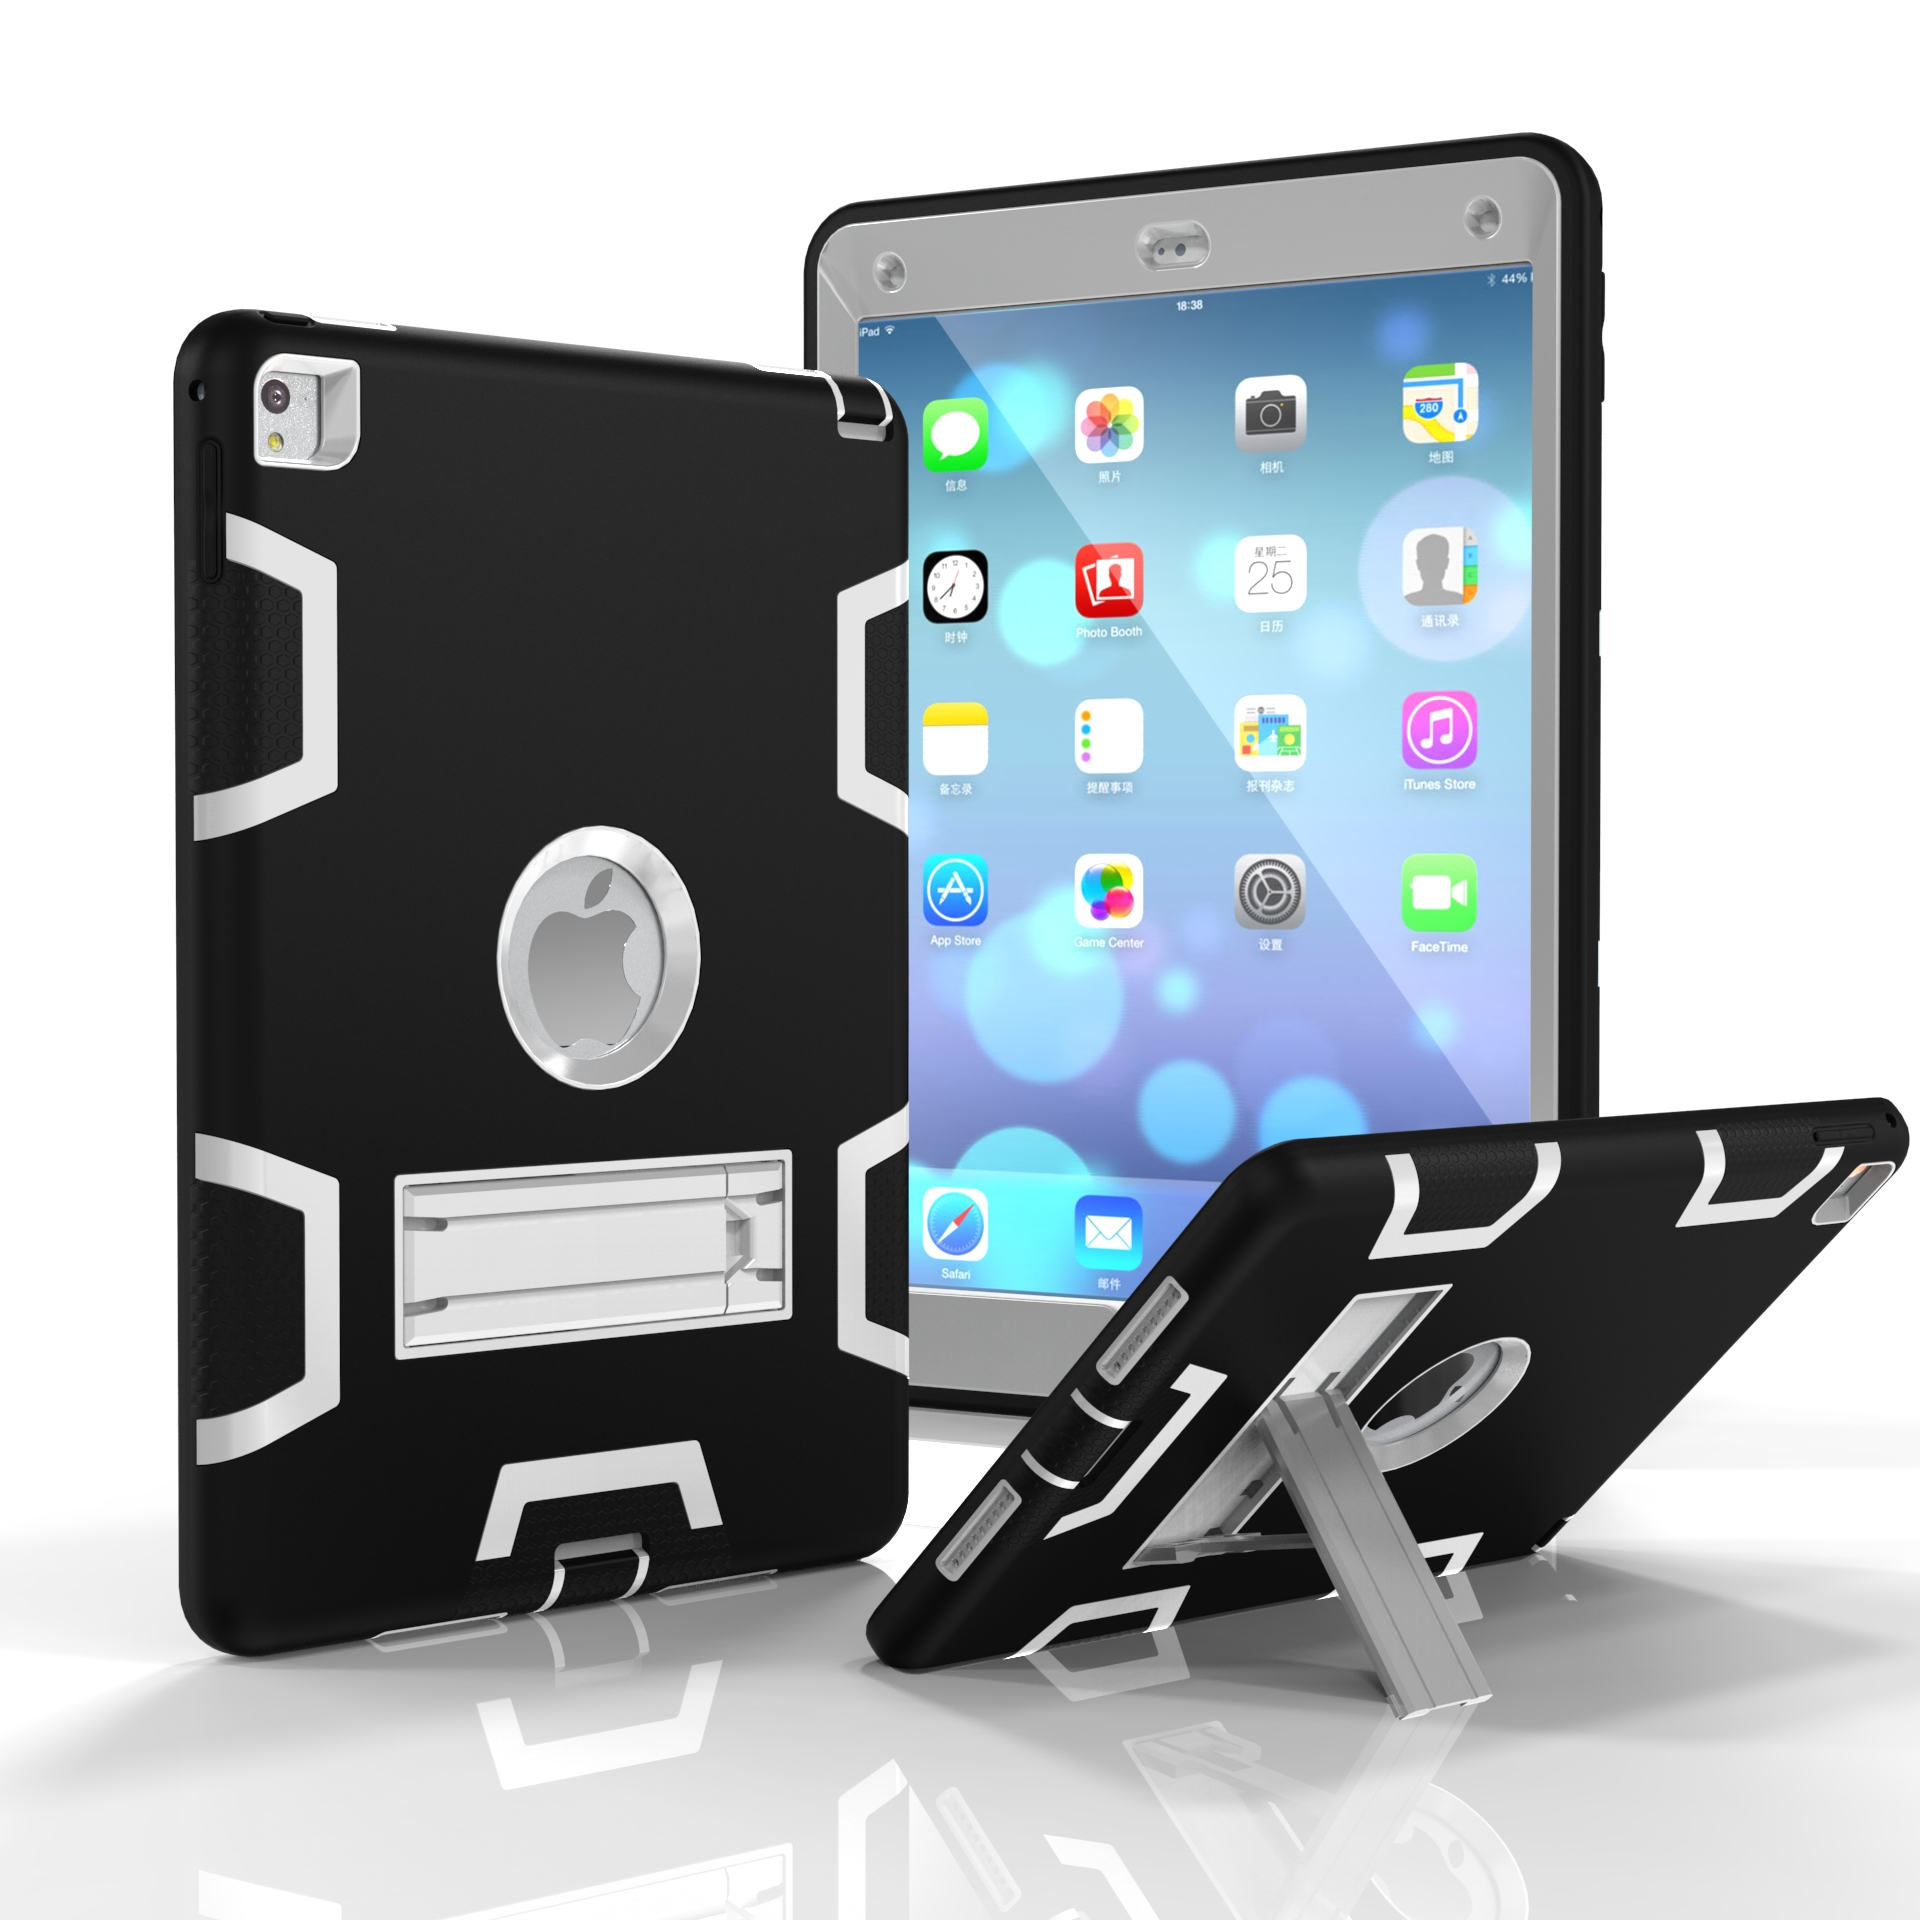 For iPad air2/iPad 6/iPad pro 9.7 2016 PC+ Silicone Hit Color Armor Case Tri-proof Shockproof Dustproof Anti-fall Protective Cover  Black + gray